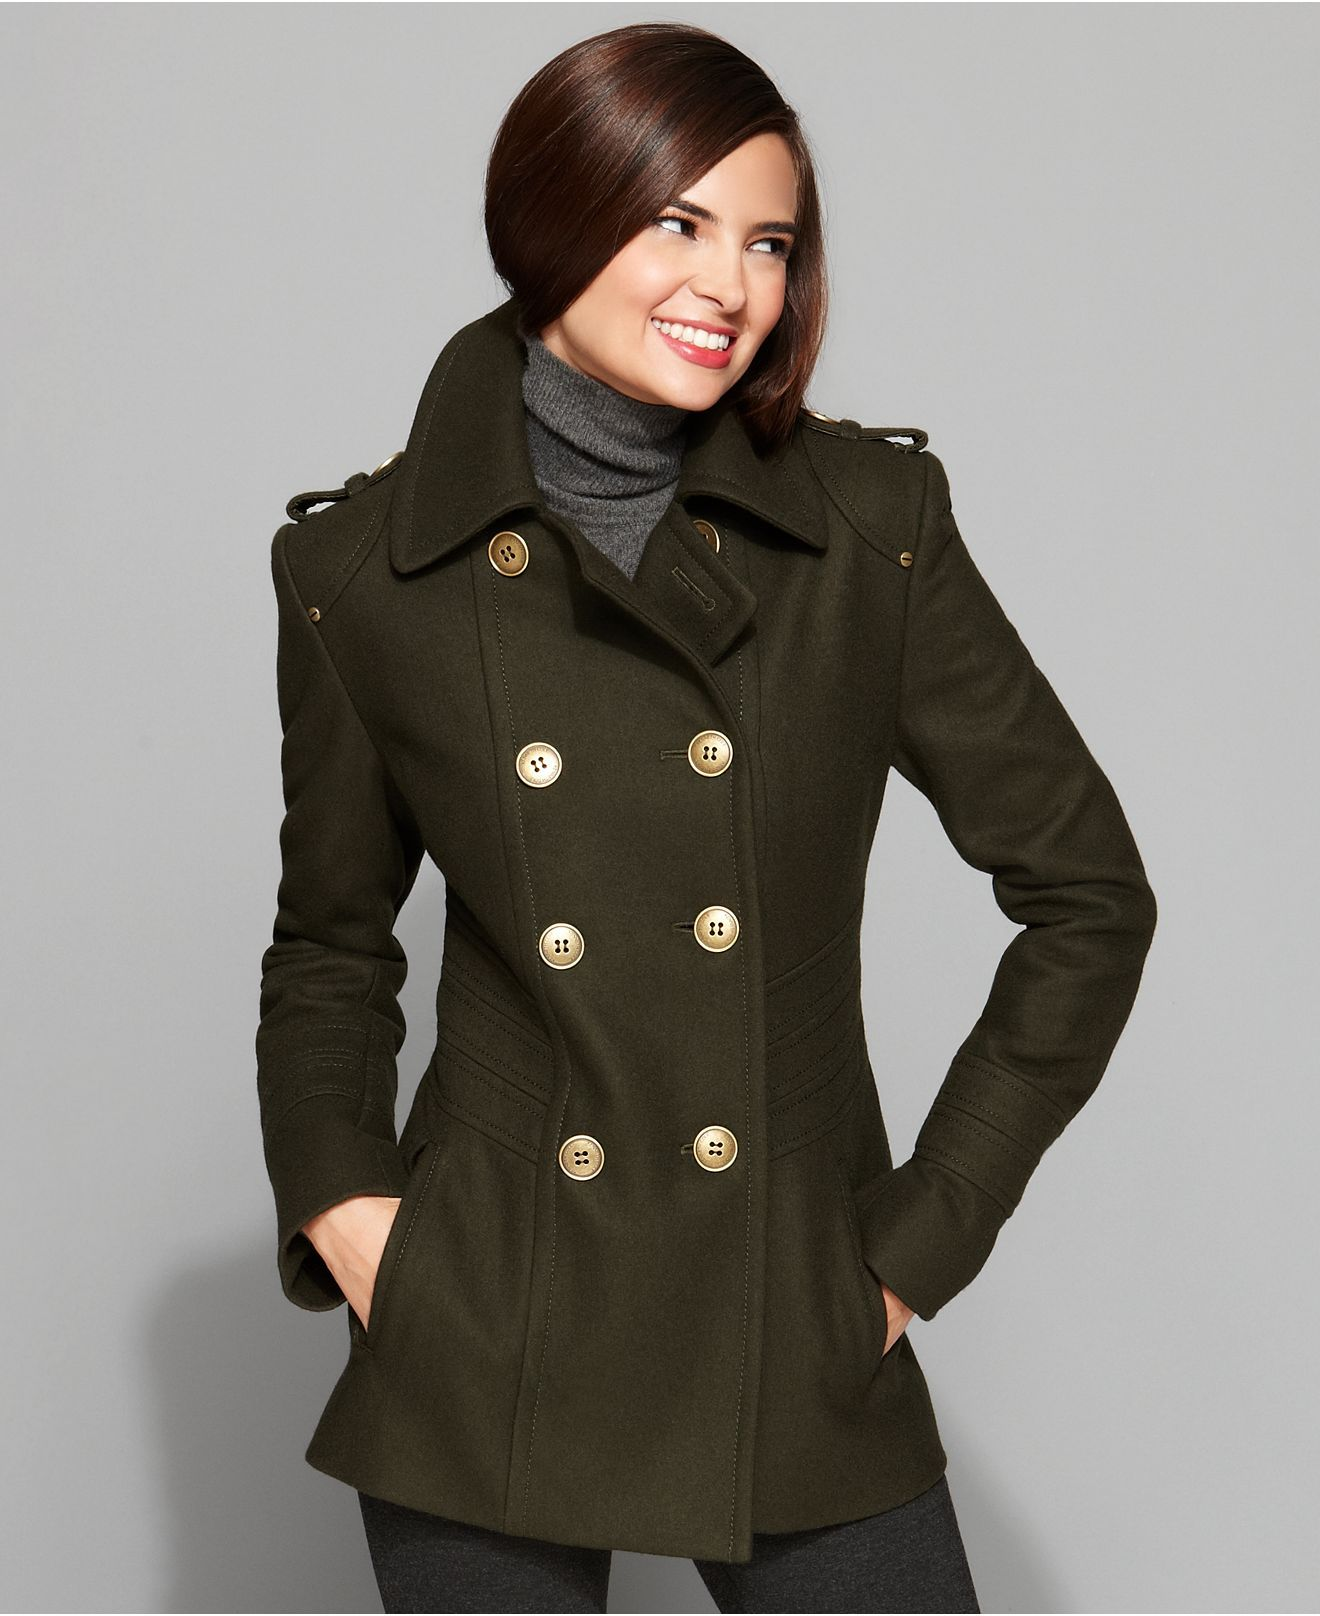 10 Best images about Women's Pea coat Fashion on Pinterest